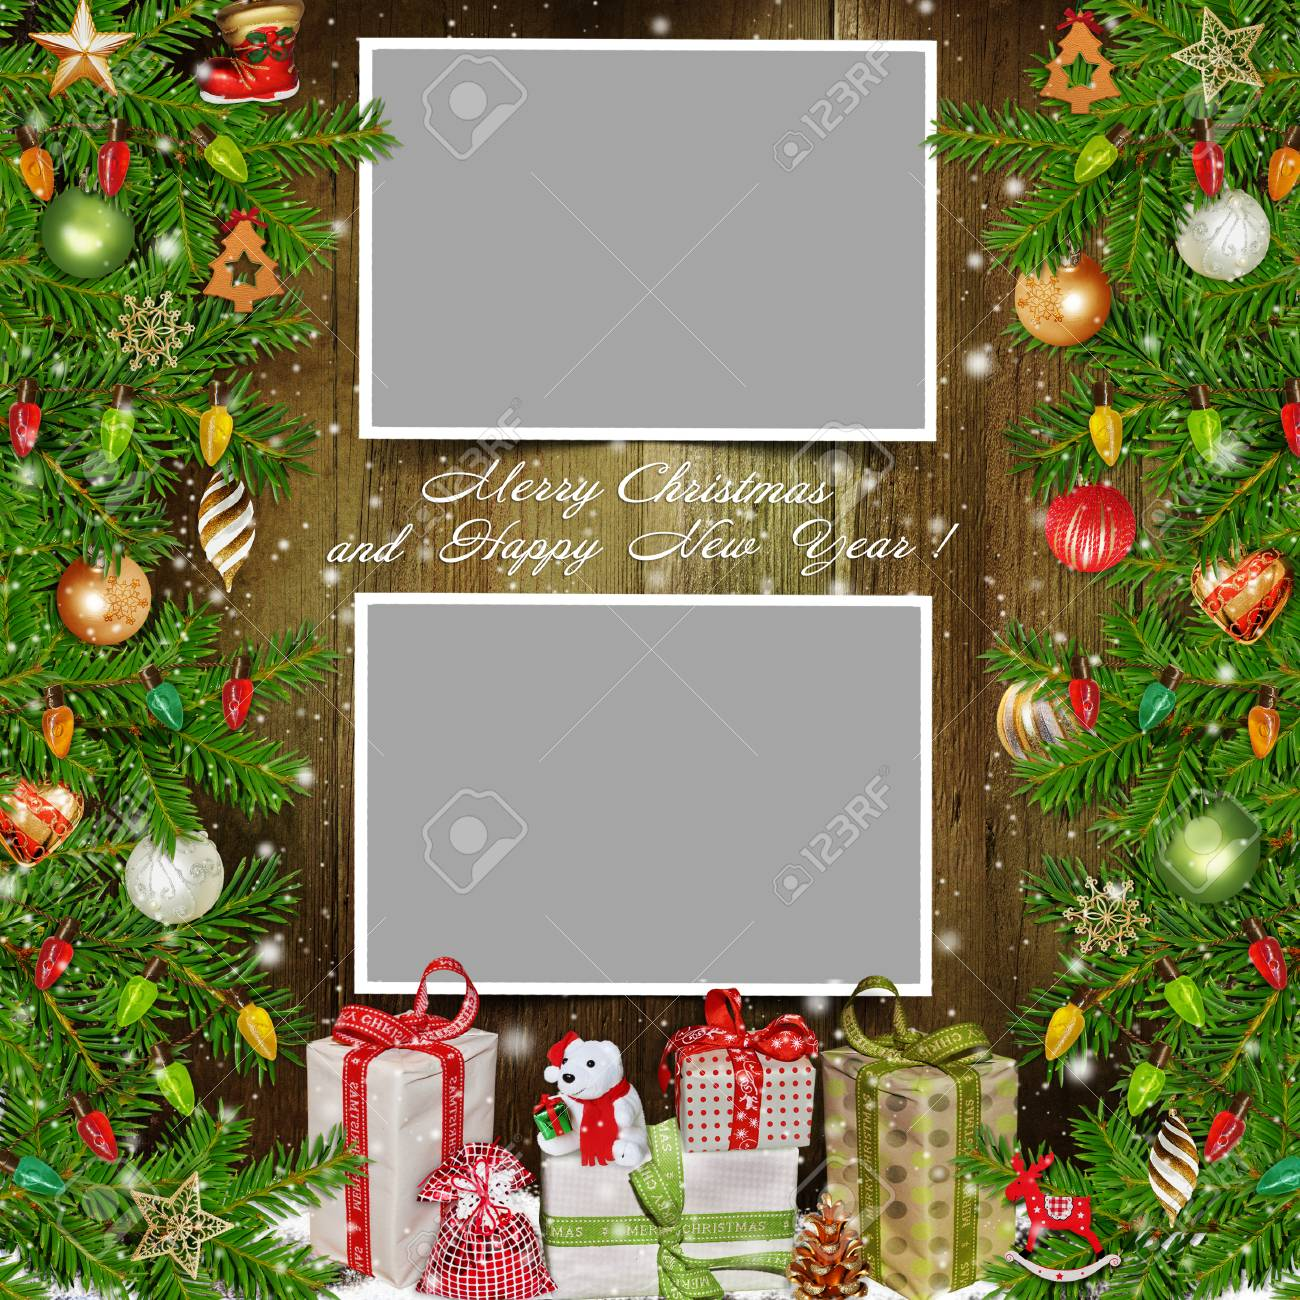 Christmas Background With Photo Frames Pine Strong Gifts And